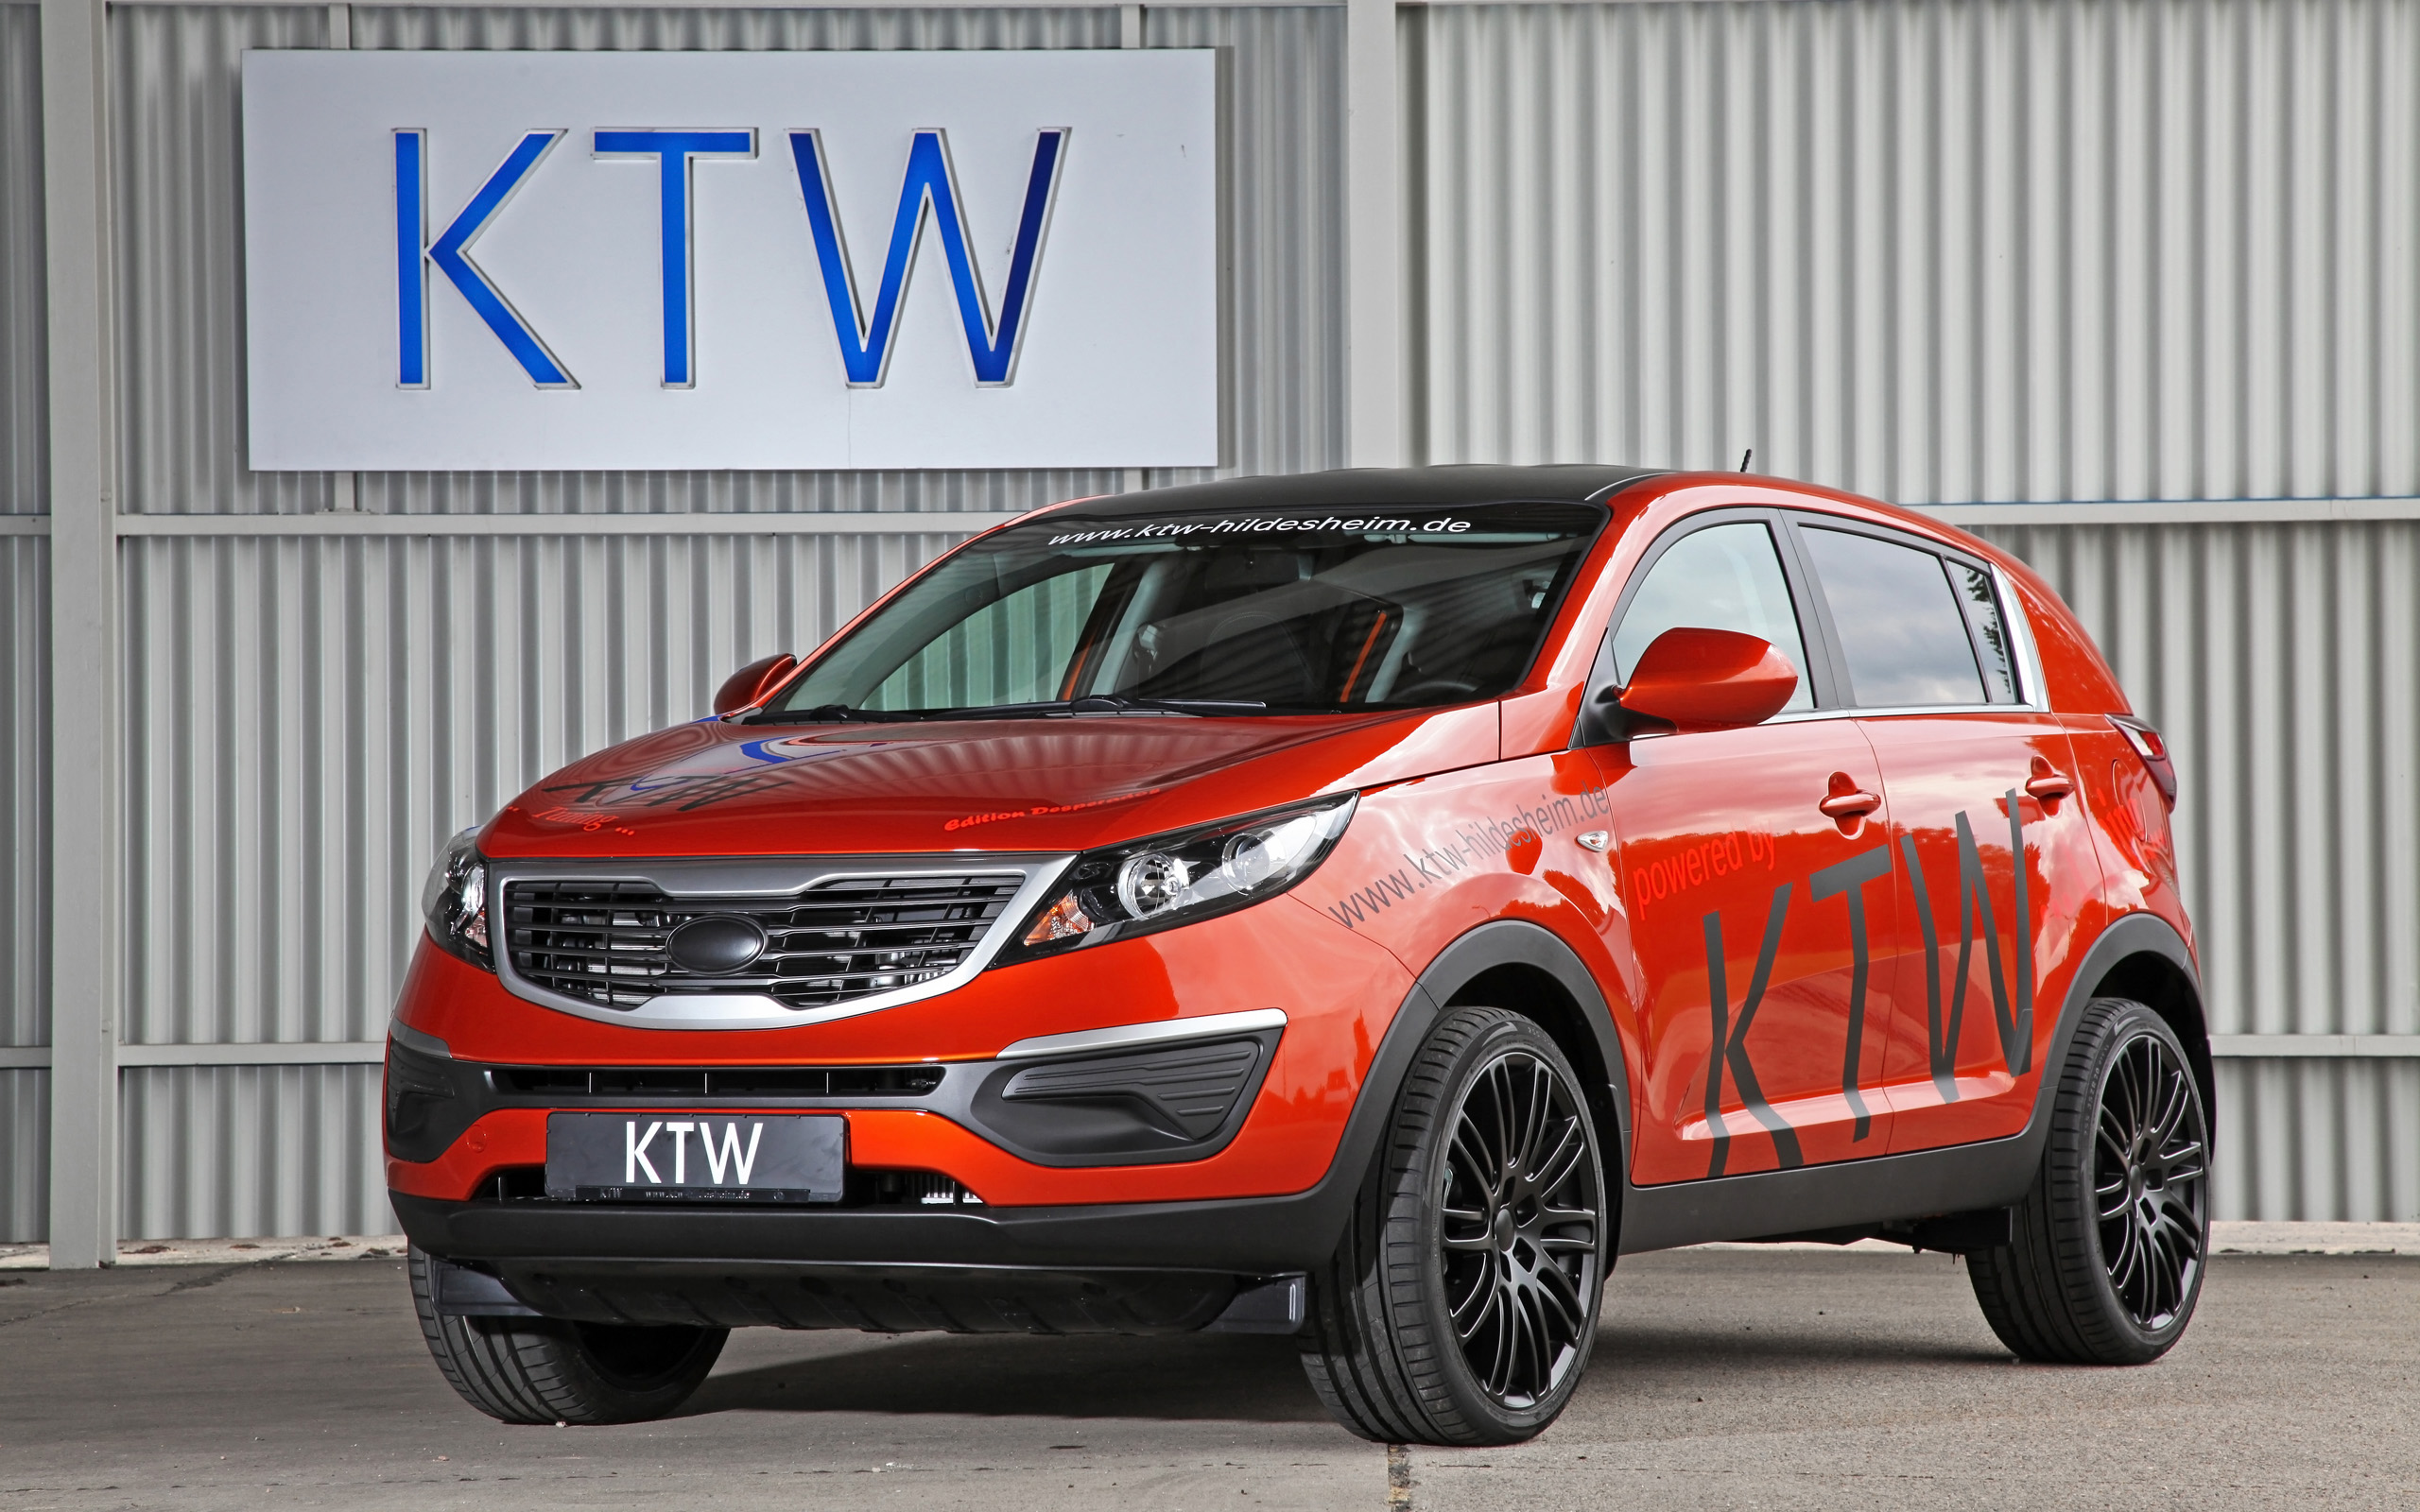 2013 ktw tuning kia sportage wallpaper hd car wallpapers. Black Bedroom Furniture Sets. Home Design Ideas